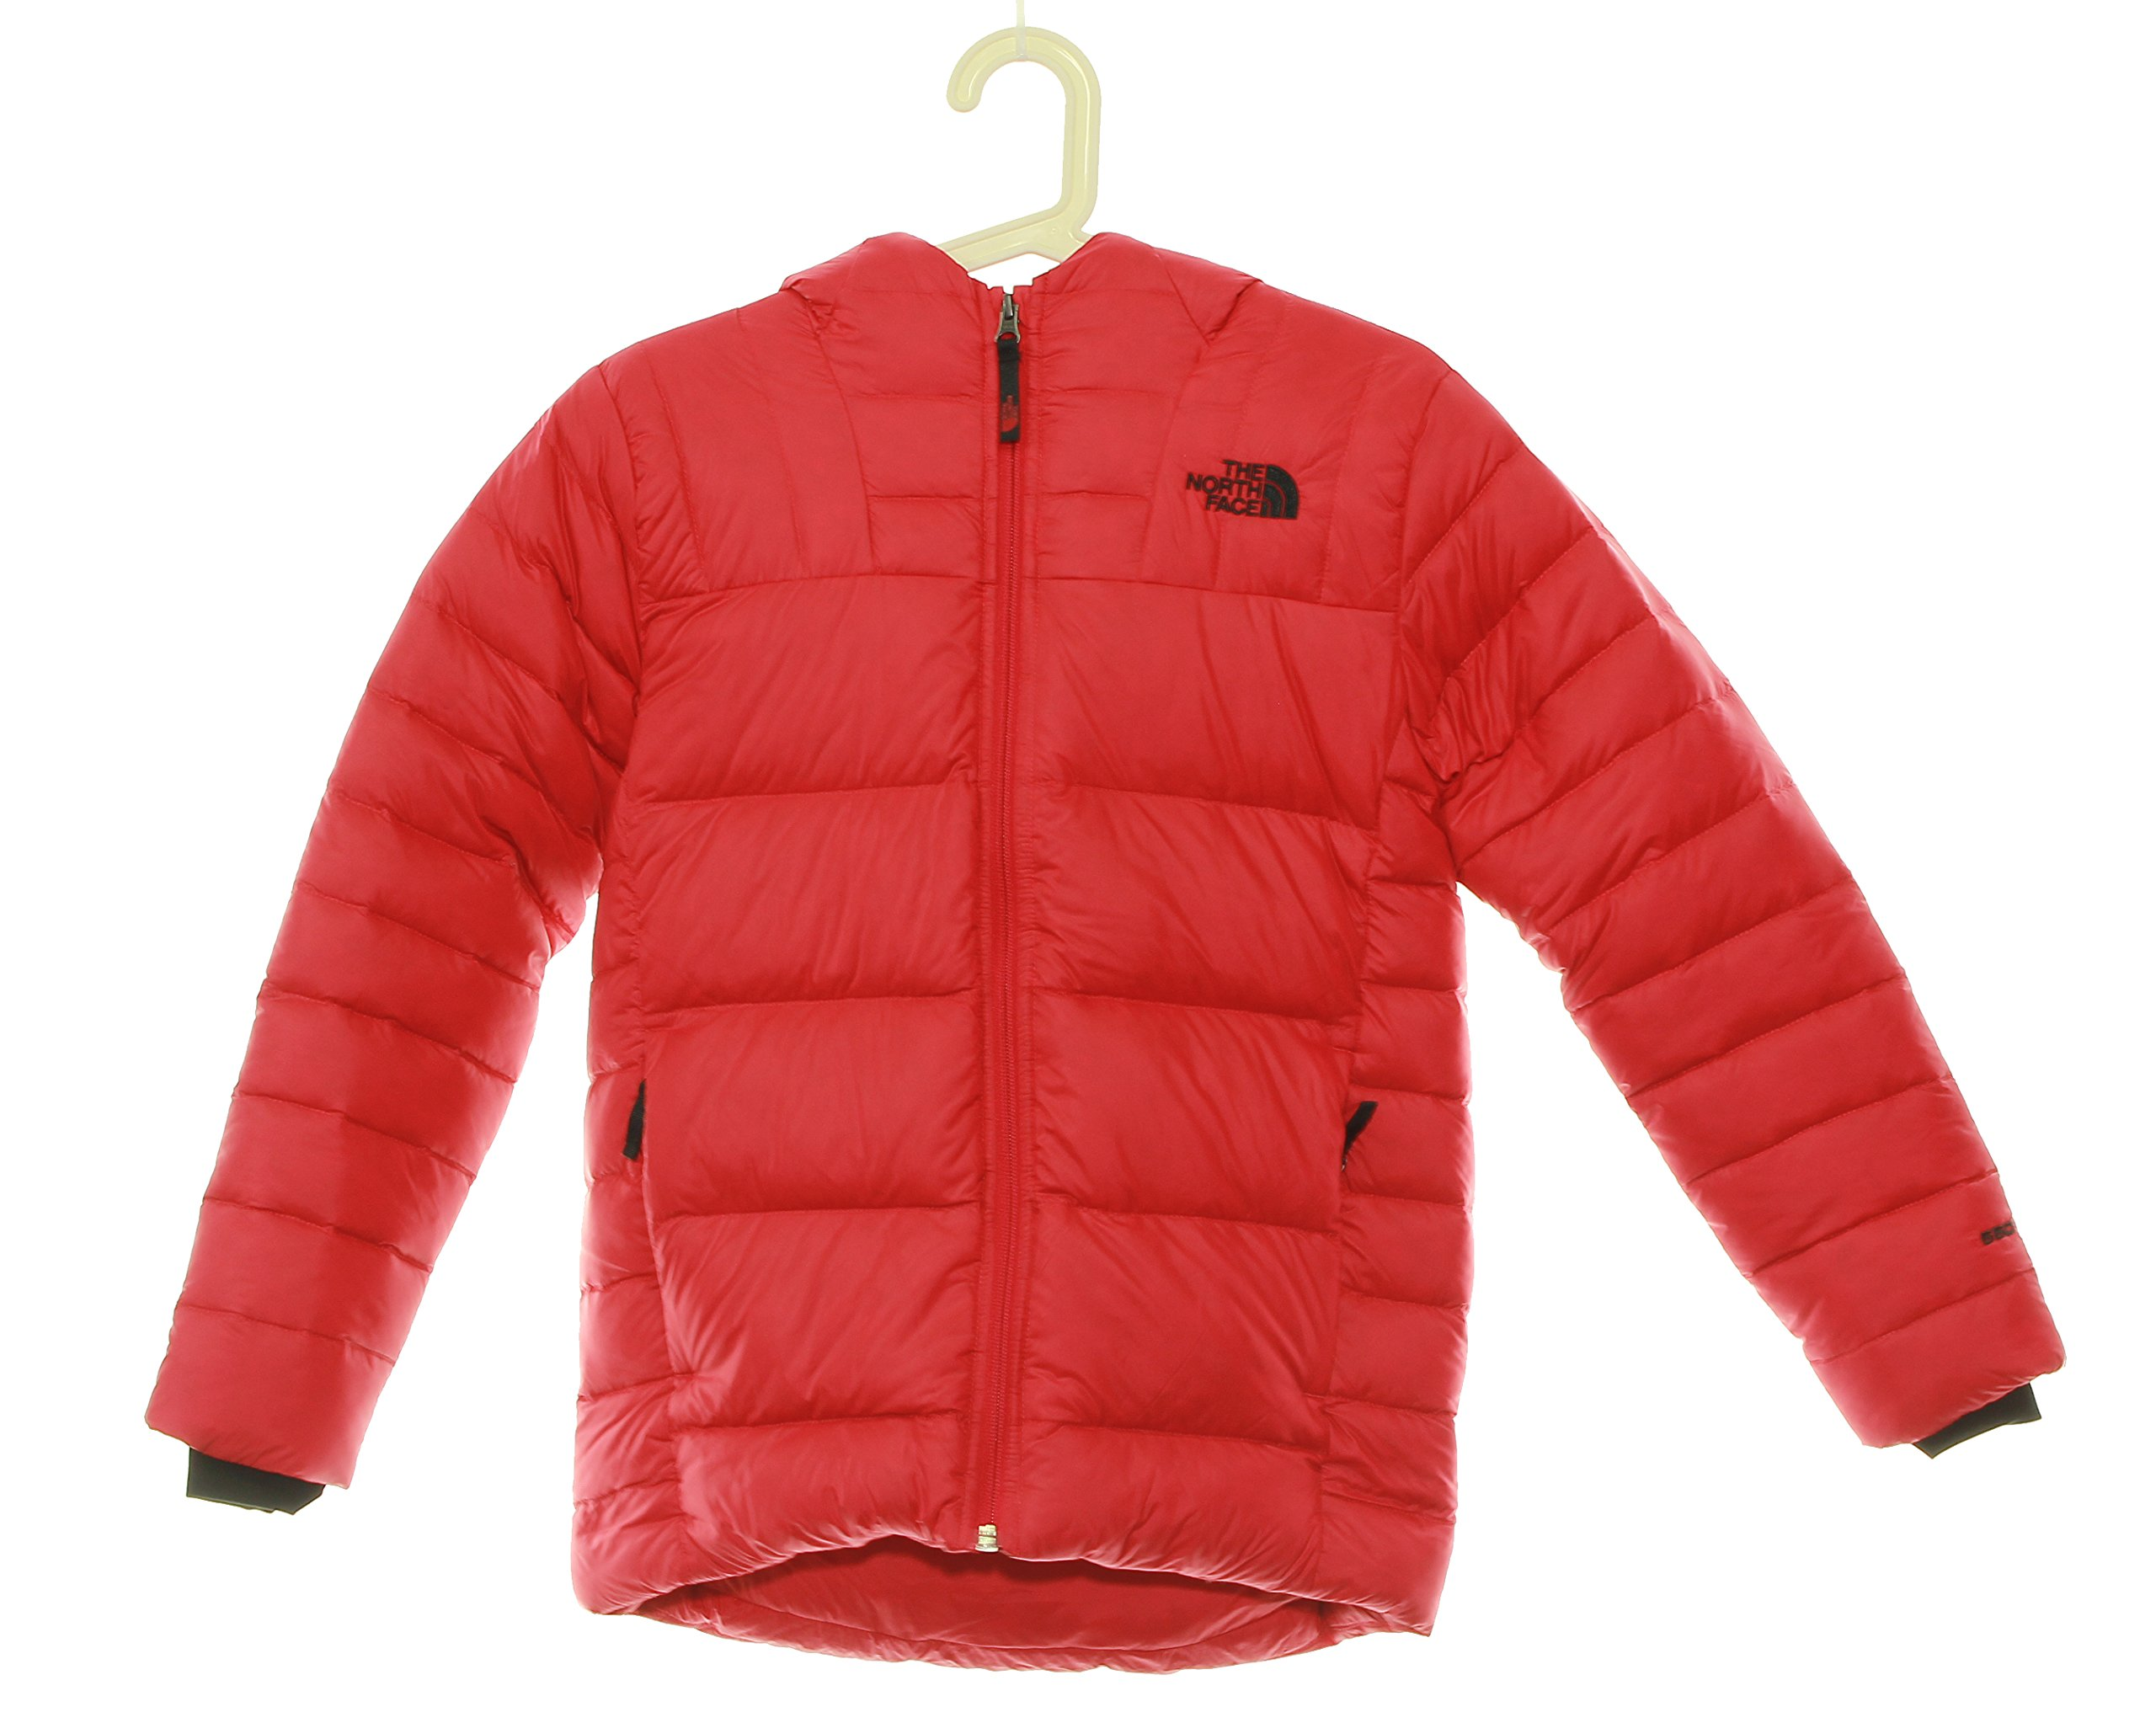 Boy's The North Face Double Down Hoodie Jacket 10/12 Medium Red